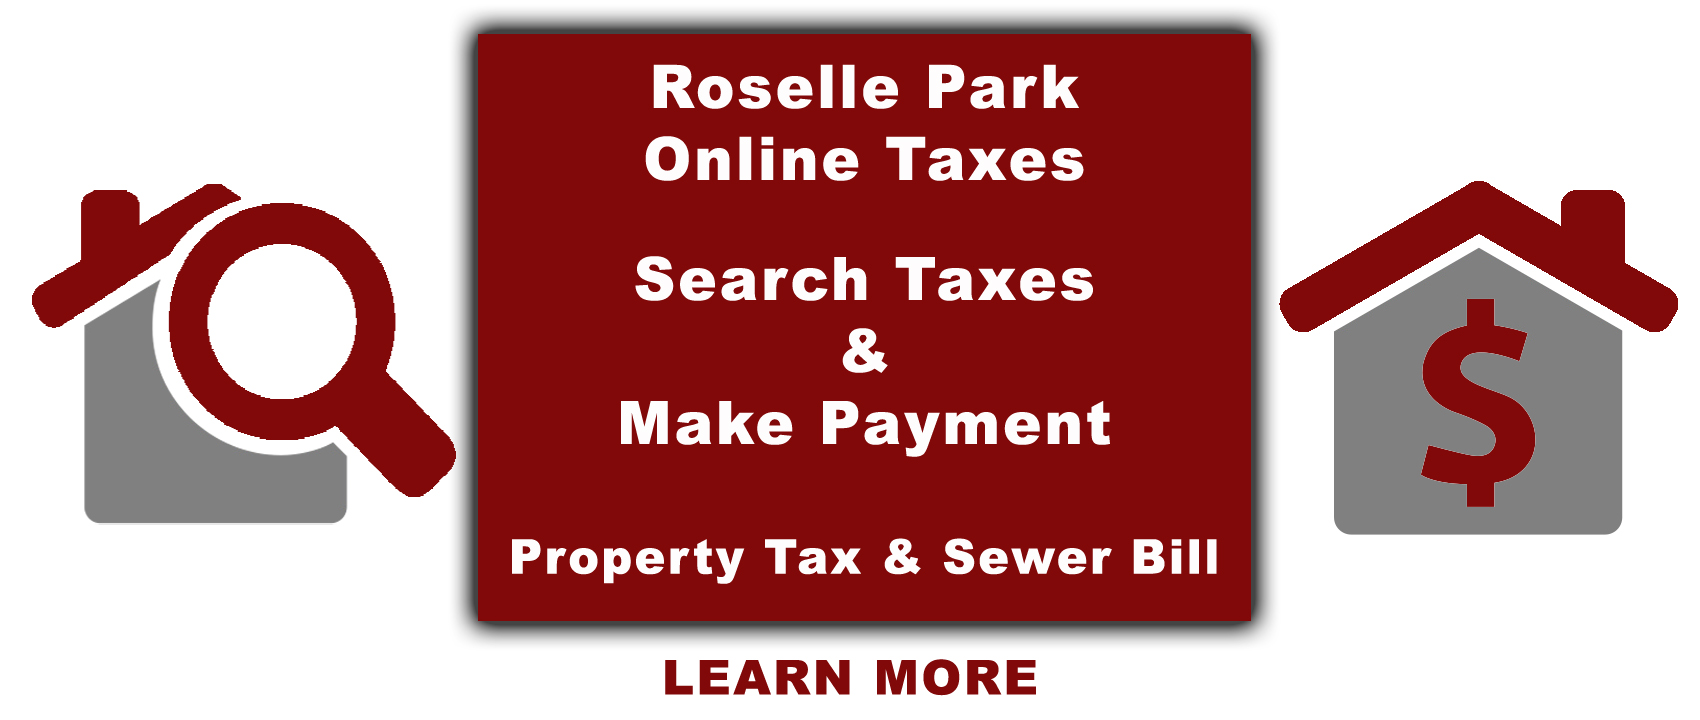 Online Tax Payment and Search